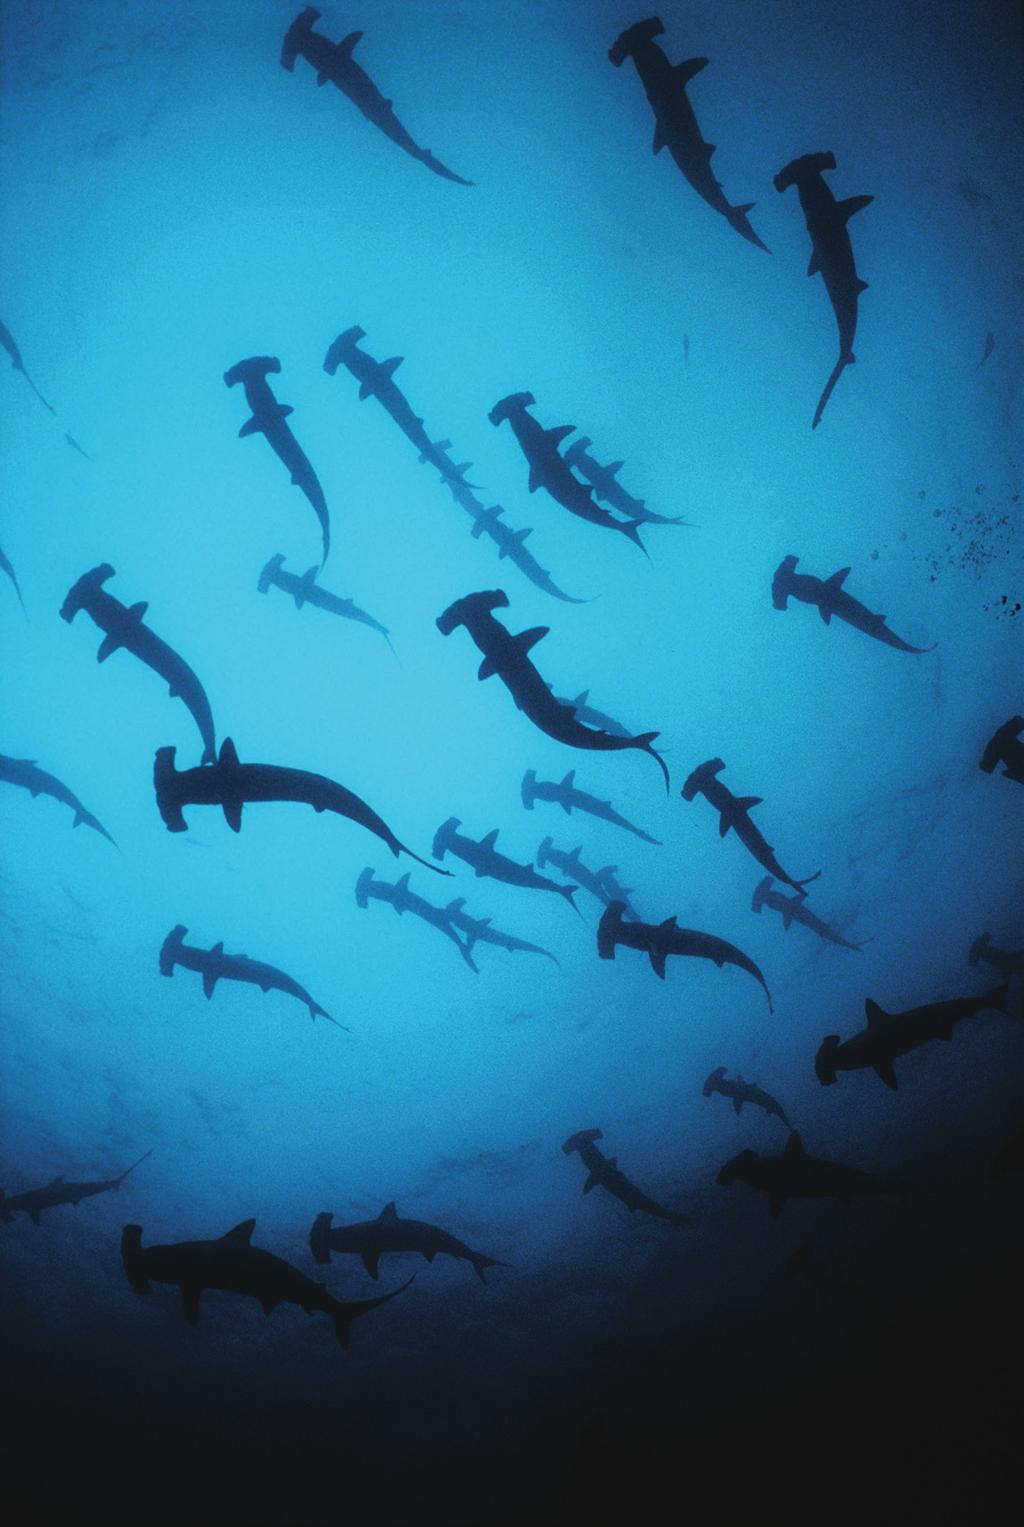 Sharks and rays facts 100M It is estimated that over 100 million sharks are killed annually, with around 10 million of those being blue sharks killed for their fins only 400M The first great sharks